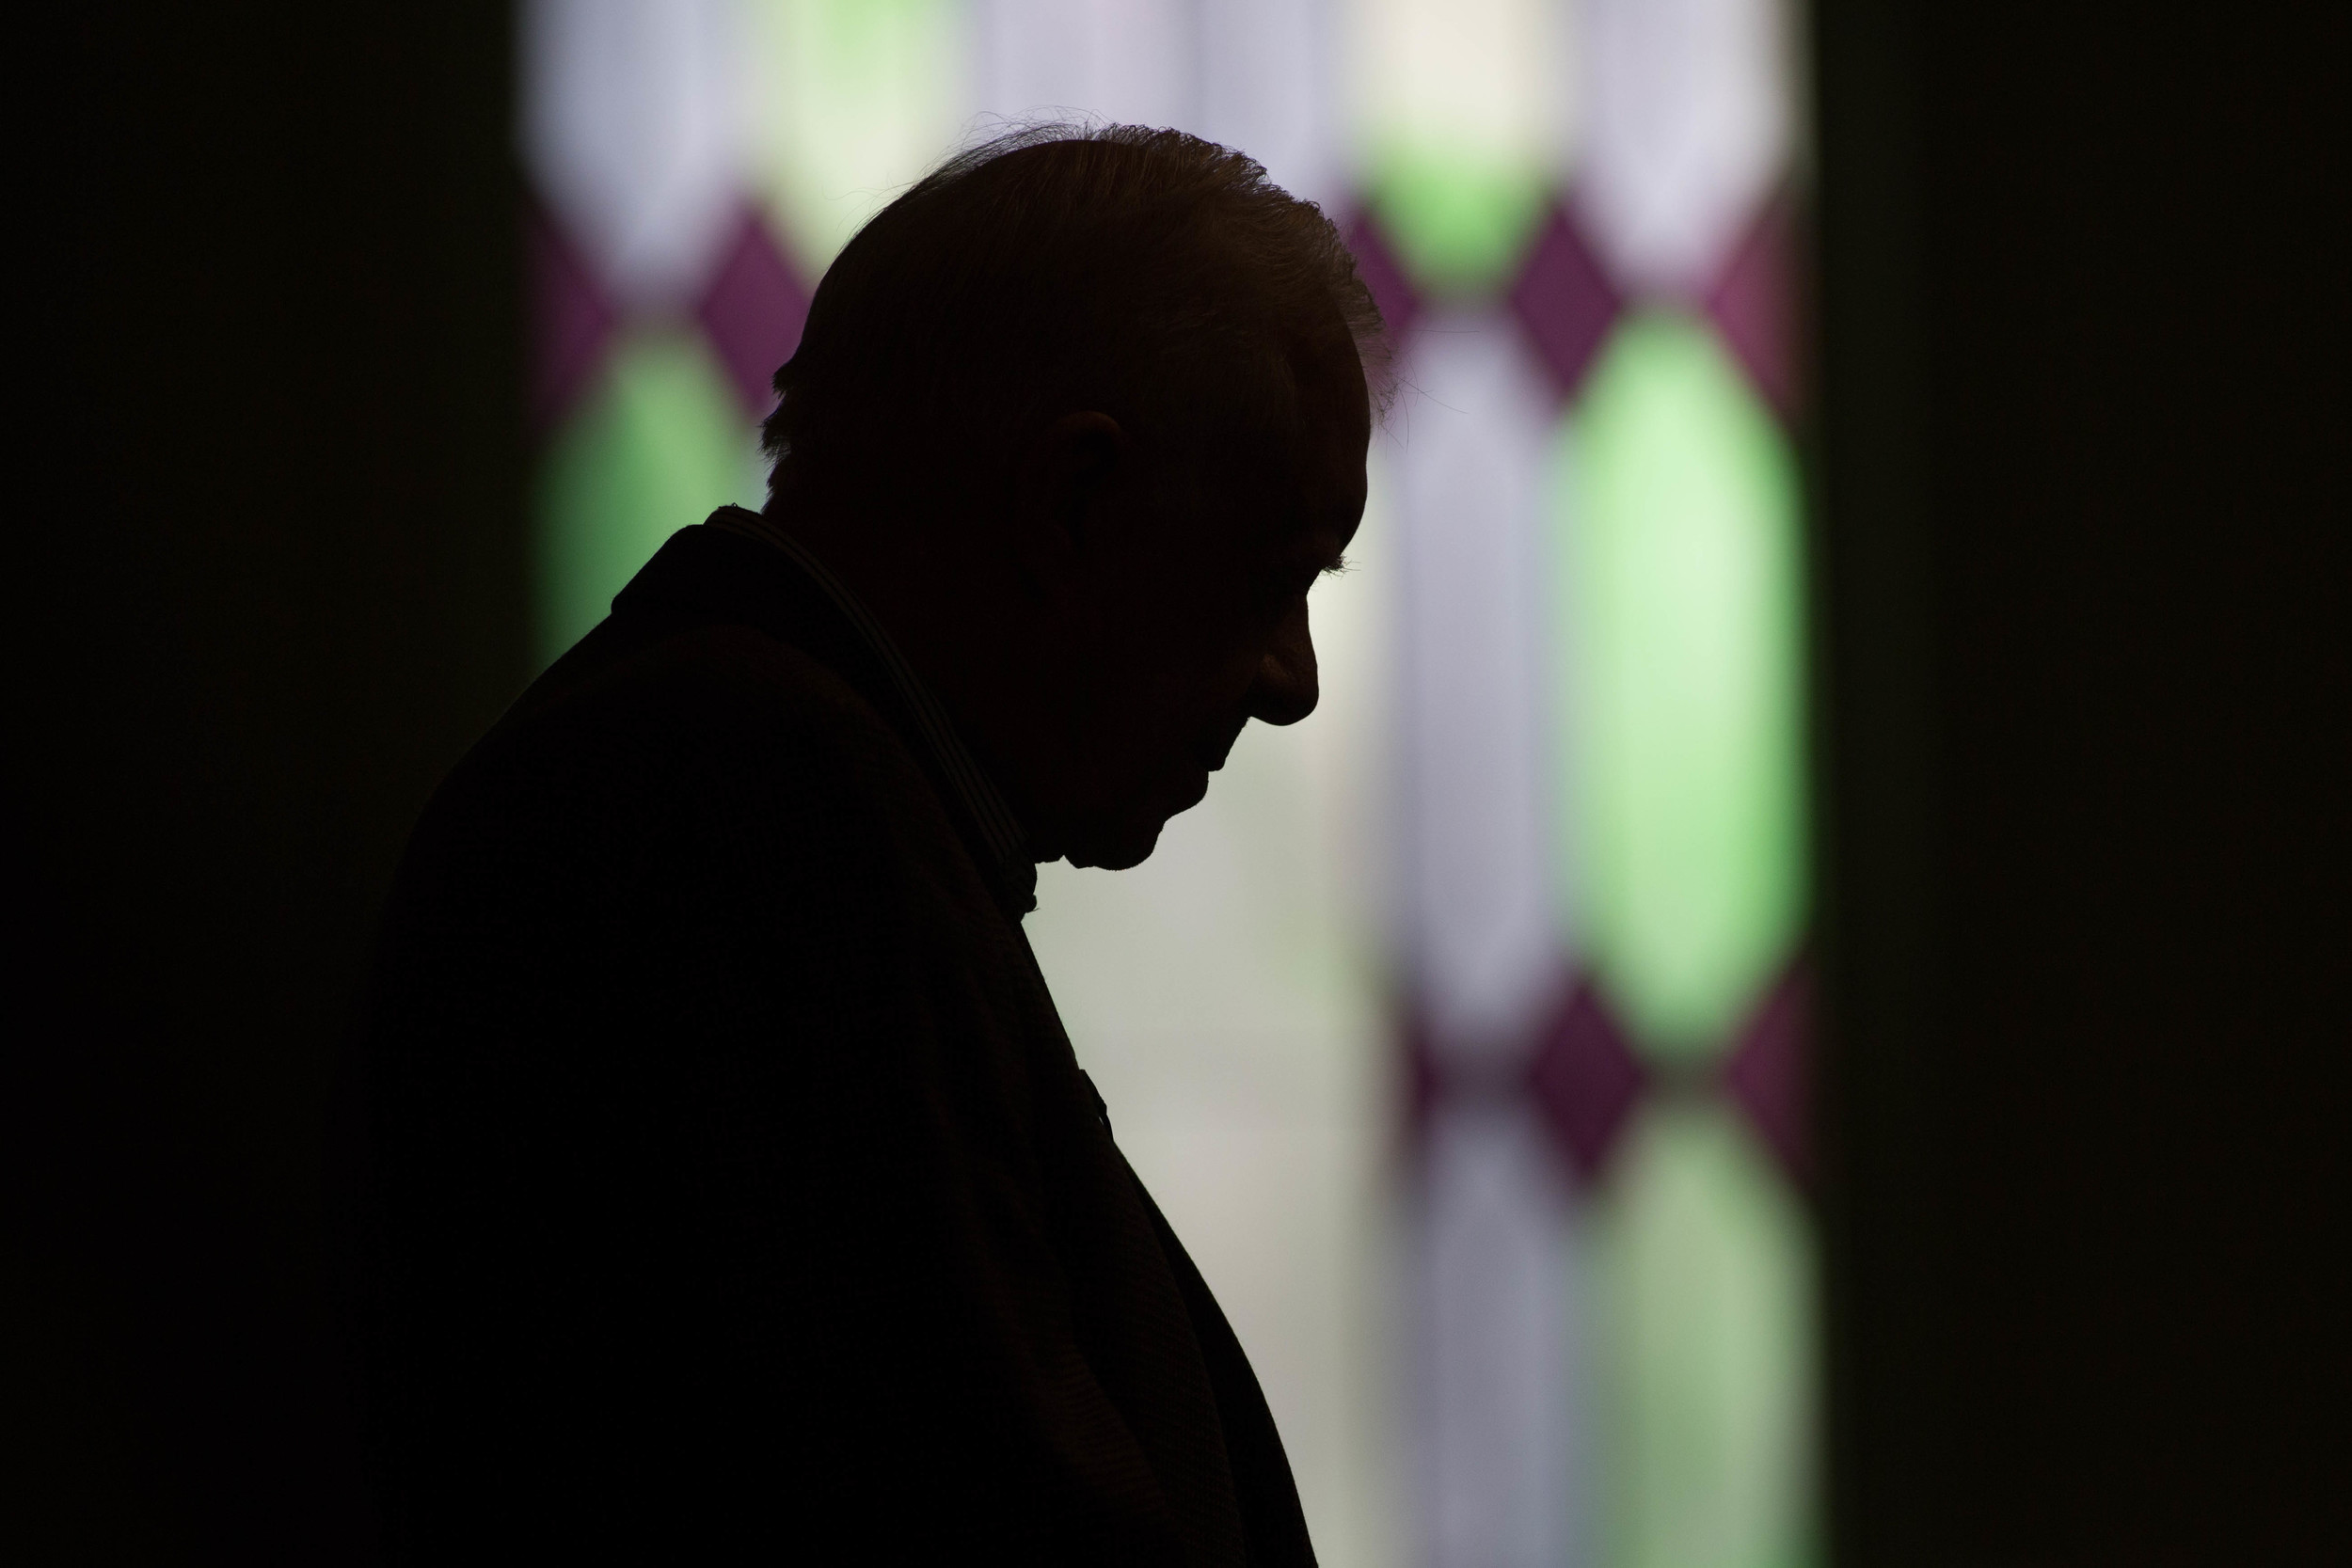 """Former President Jimmy Carter prays during Sunday School class at Maranatha Baptist Church in his hometown, Sunday, Dec. 13, 2015, in Plains, Ga. A recent MRI showing no cancer on Jimmy Carter's brain is """"very positive"""" news for the former president but will not end his medical treatment, doctors said. Carter, 91, announced on Dec. 6 that doctors found no evidence of the four lesions discovered on his brain this summer and no signs of new cancer growth. (AP Photo/Branden Camp)"""